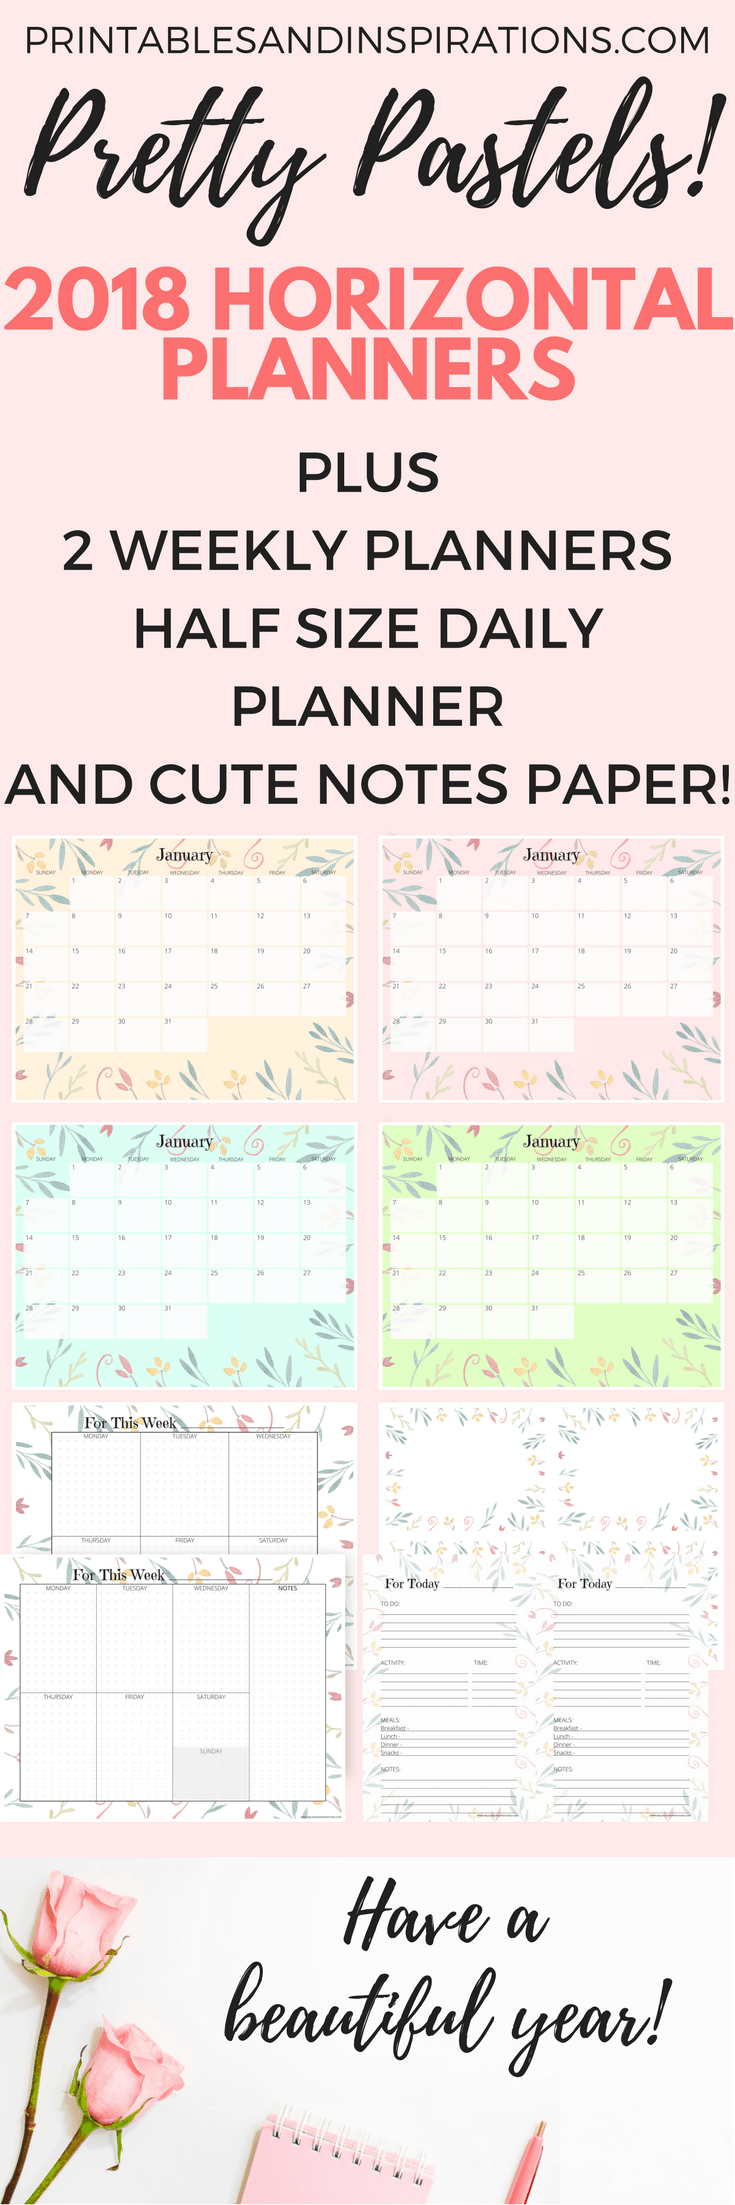 Free Printable 2018 Horizontal Planner In Pretty Pastel Colors ...